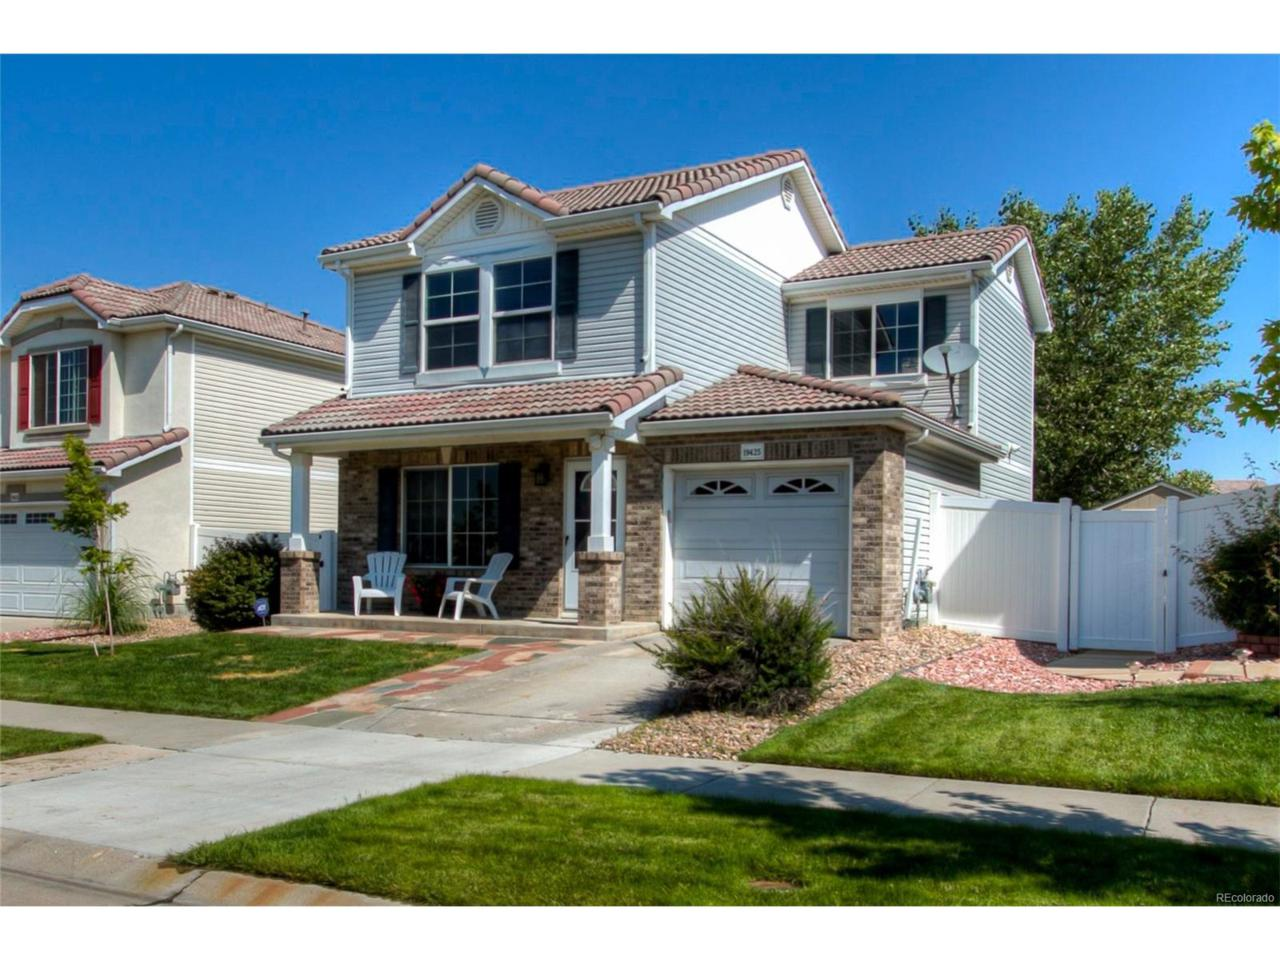 19425 Robins Drive, Denver, CO 80249 (MLS #8700935) :: 8z Real Estate